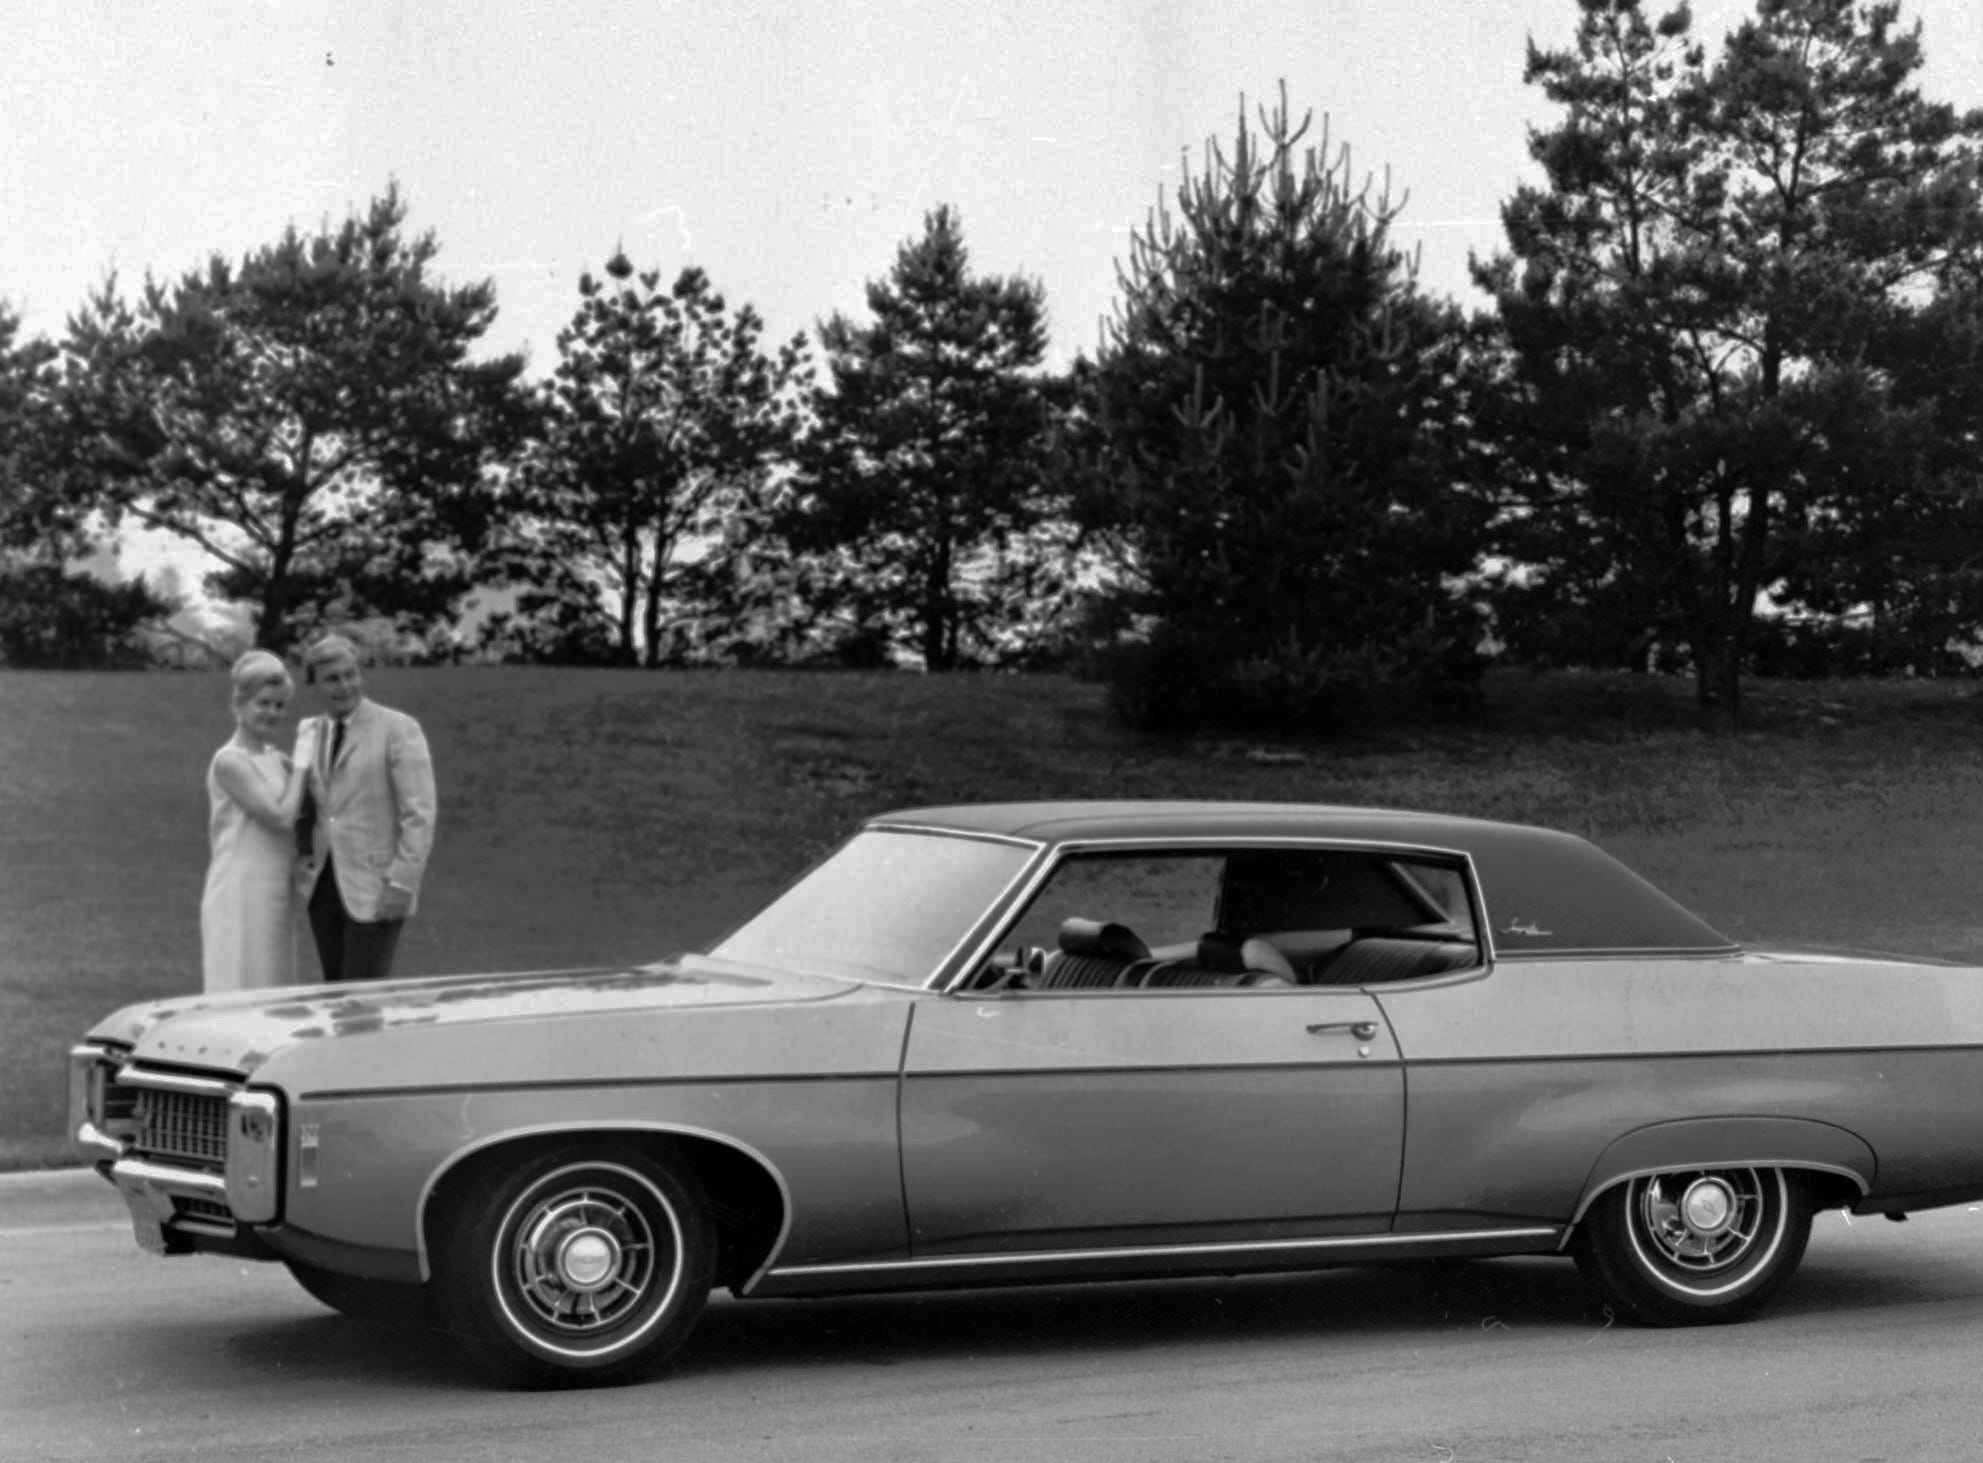 In this undated file photo provided by General Motors, as 1969 Chevrolet Impala Custom Coupe is shown.